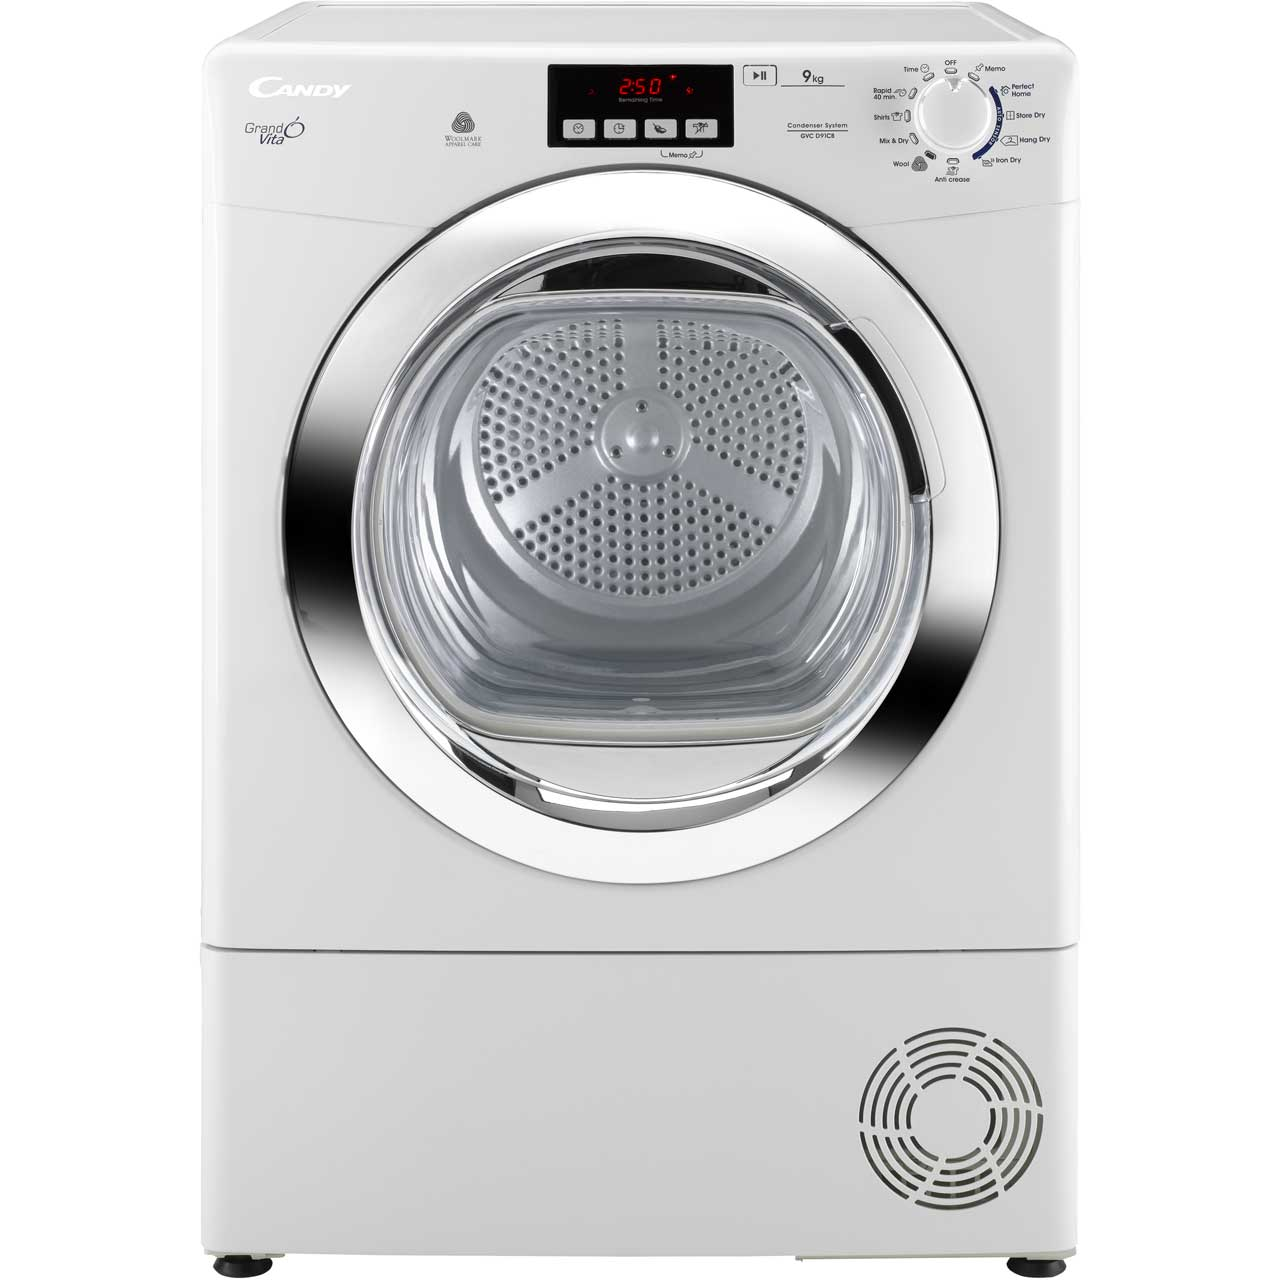 Candy Grand'O Vita GVCD91CB Condenser Tumble Dryer - White